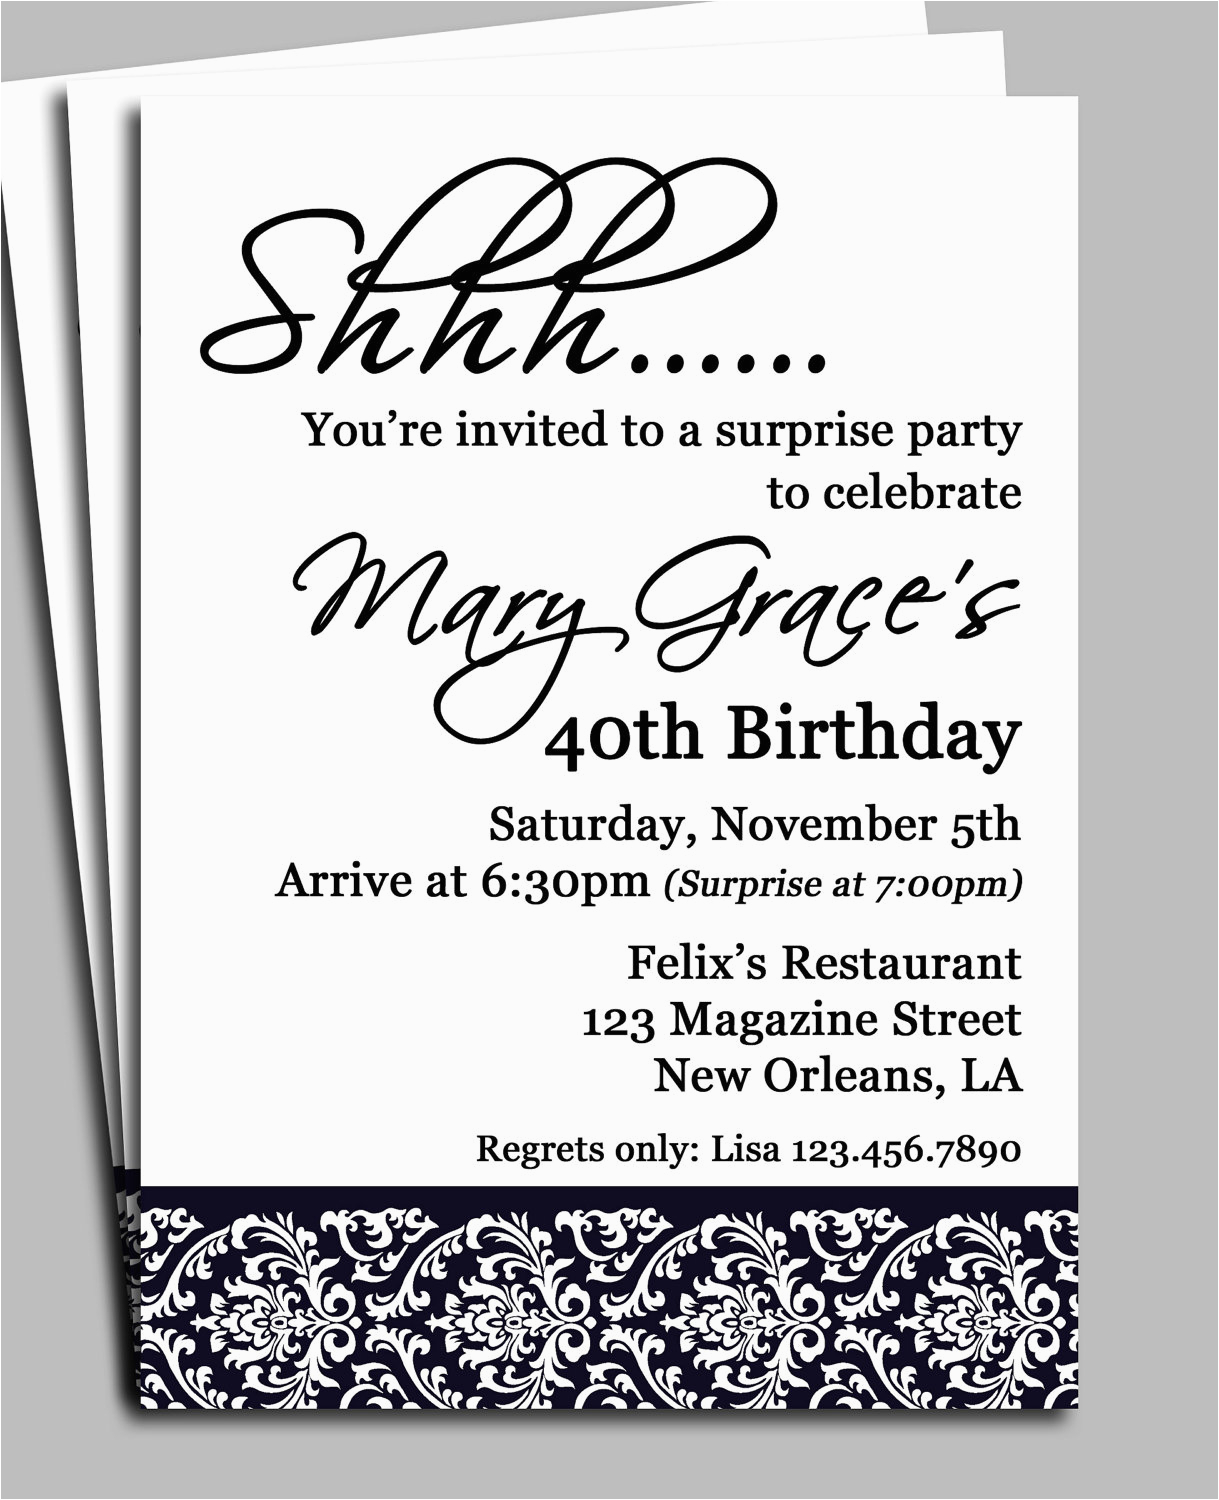 Free Printable Surprise Birthday Invitations Template Black Damask Party Invitation Or Printed